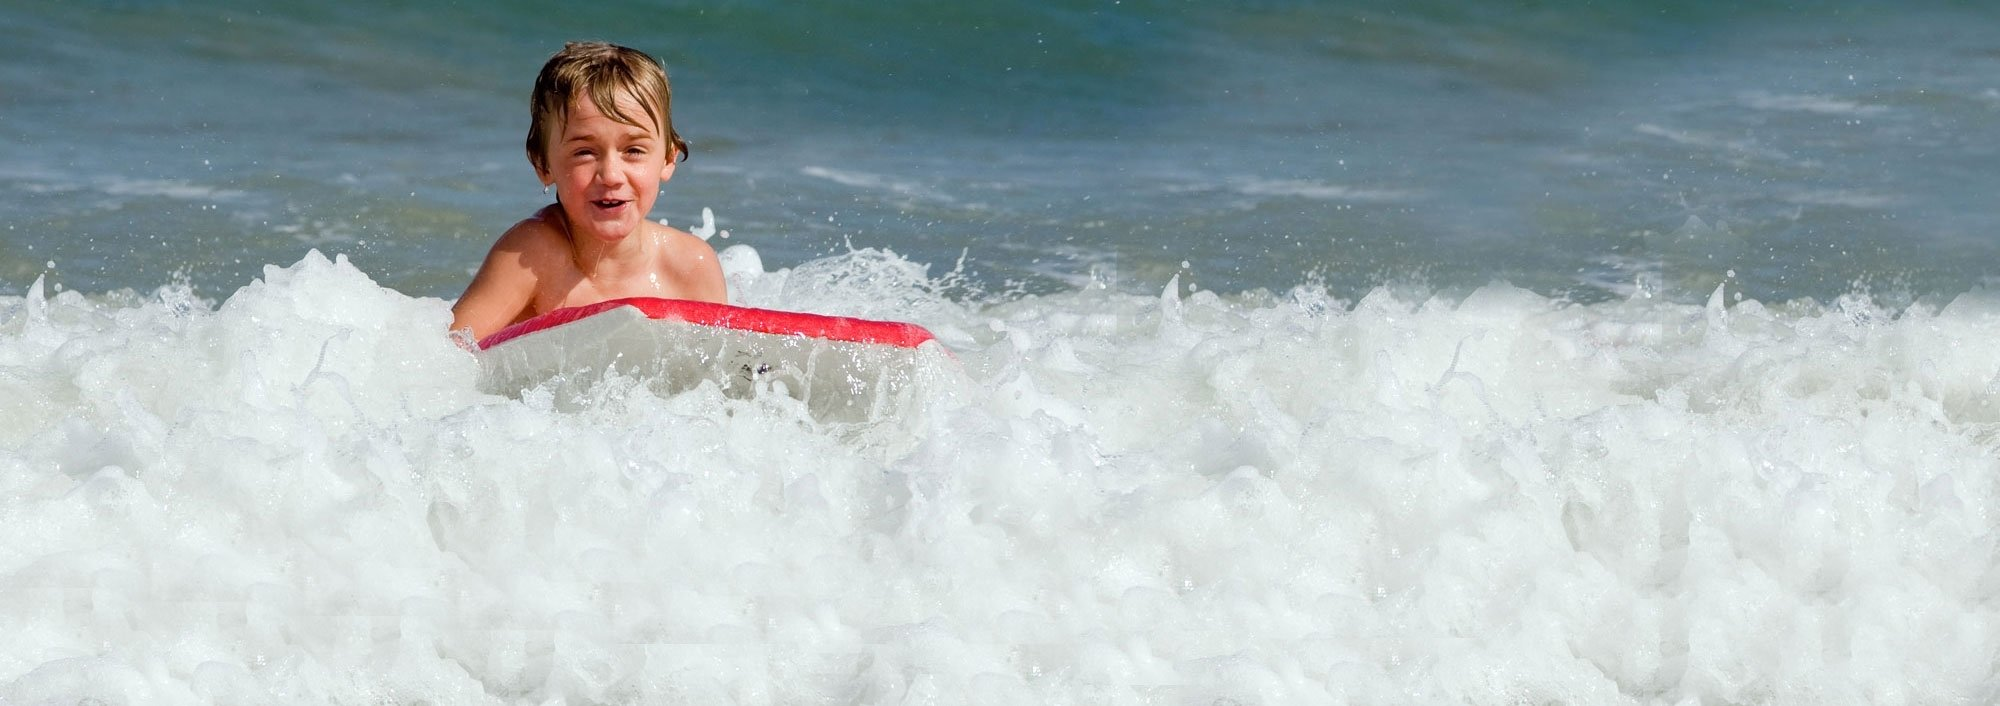 2- Boy surfing